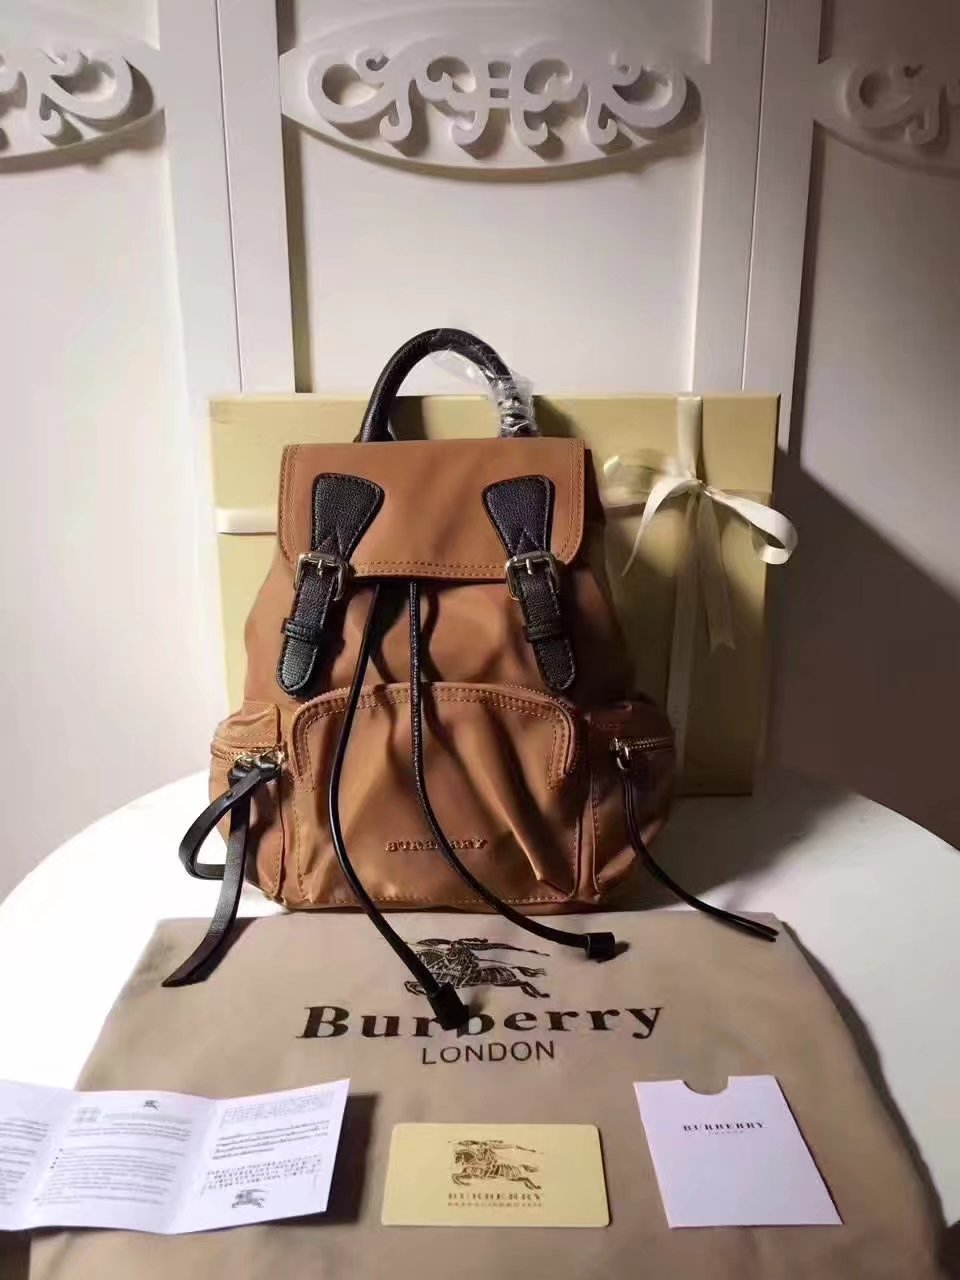 Burberry 66171 The Medium Coffee Rucksack in Technical Nylon and Leather